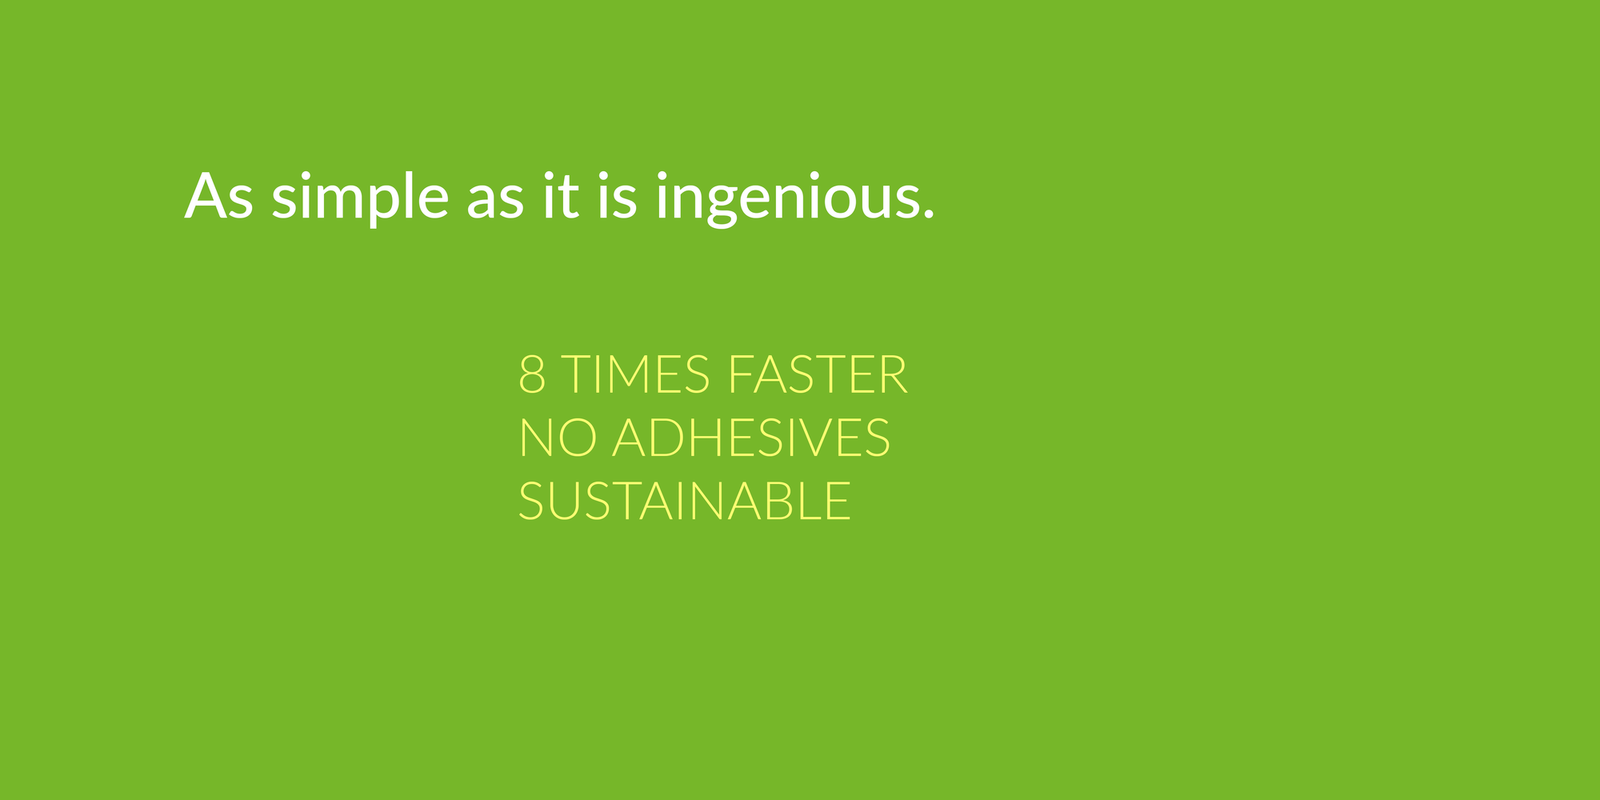 As simple as it is ingenious. 8 times faster, no adhesives, sustainable.